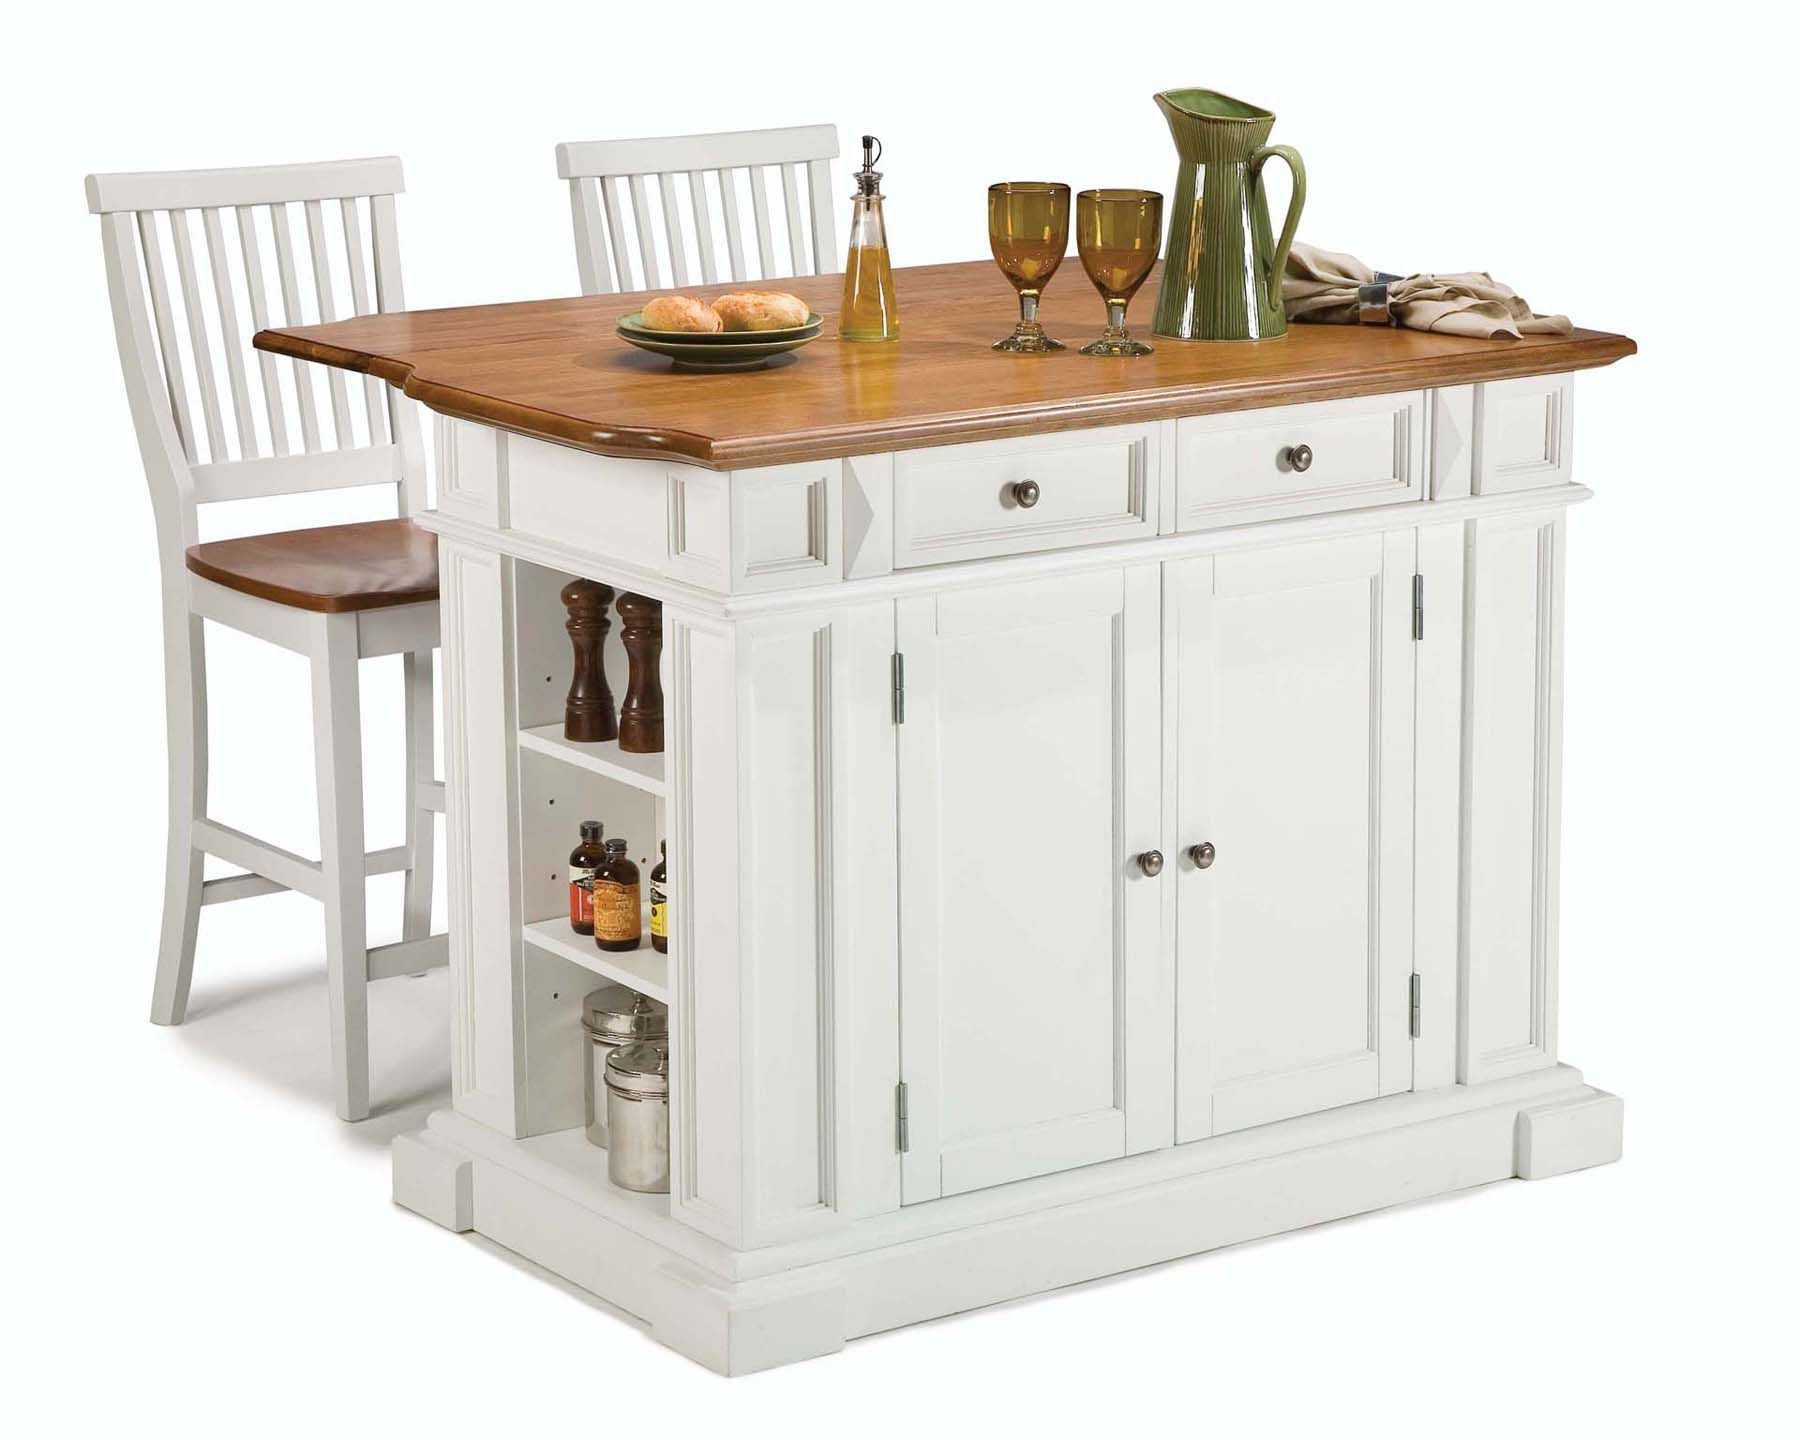 small kitchen island with stools portable kitchen island with stools roselawnlutheran 8074